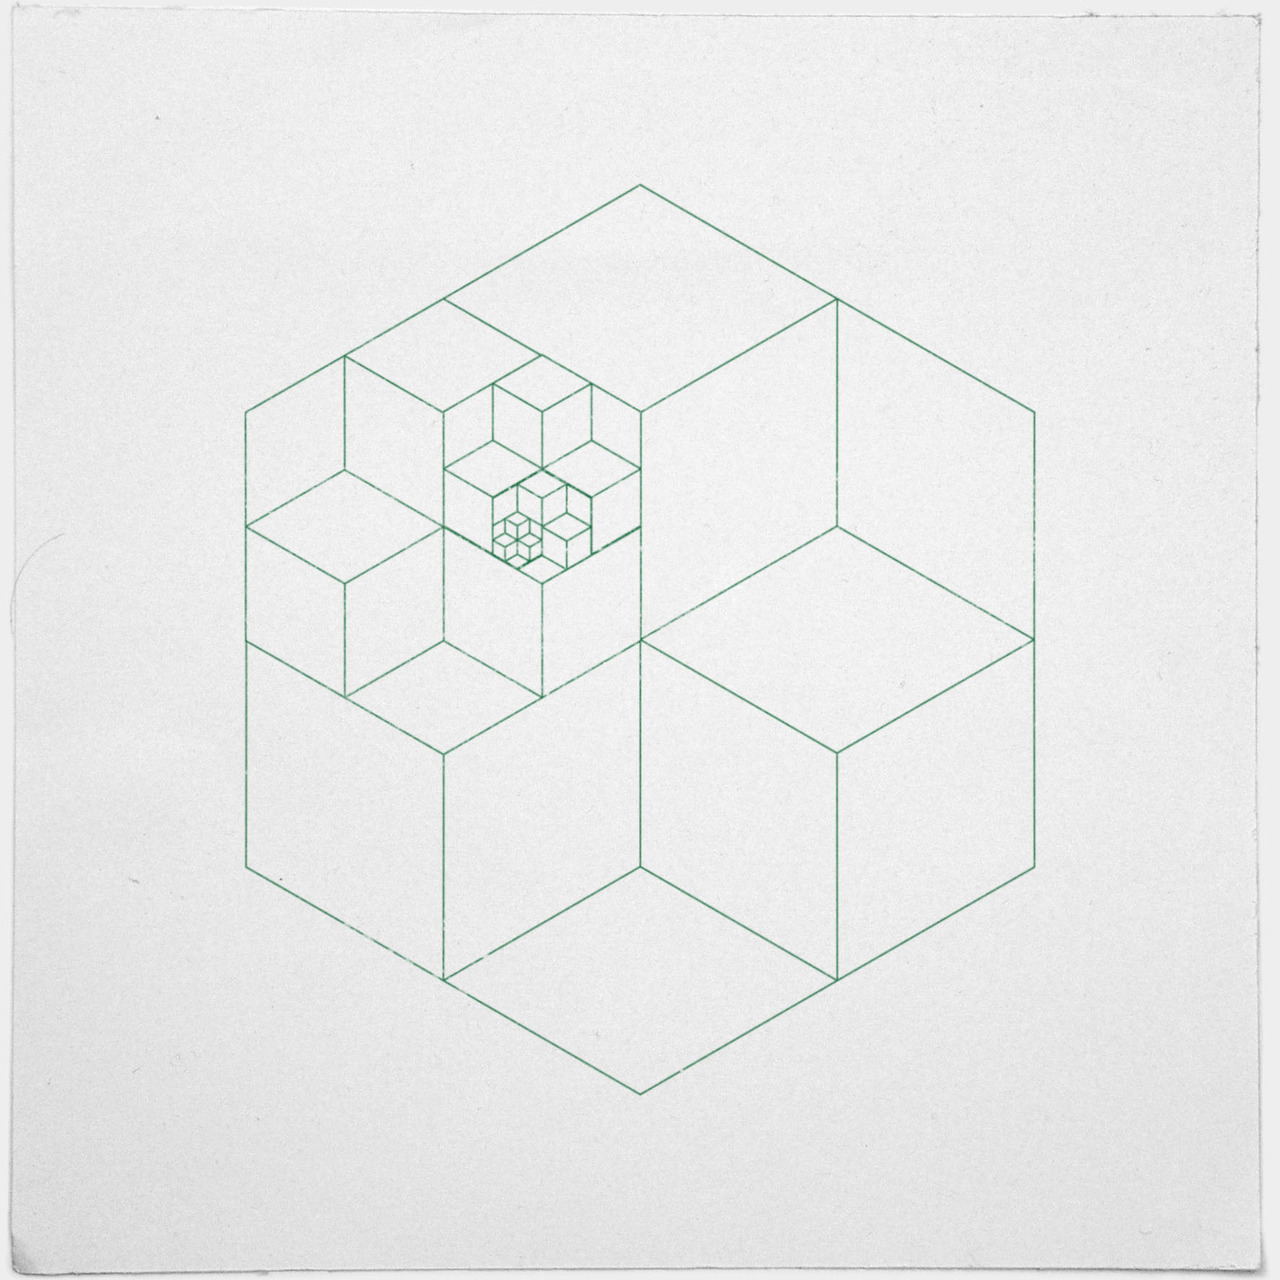 geometri-ic-ice-kupler